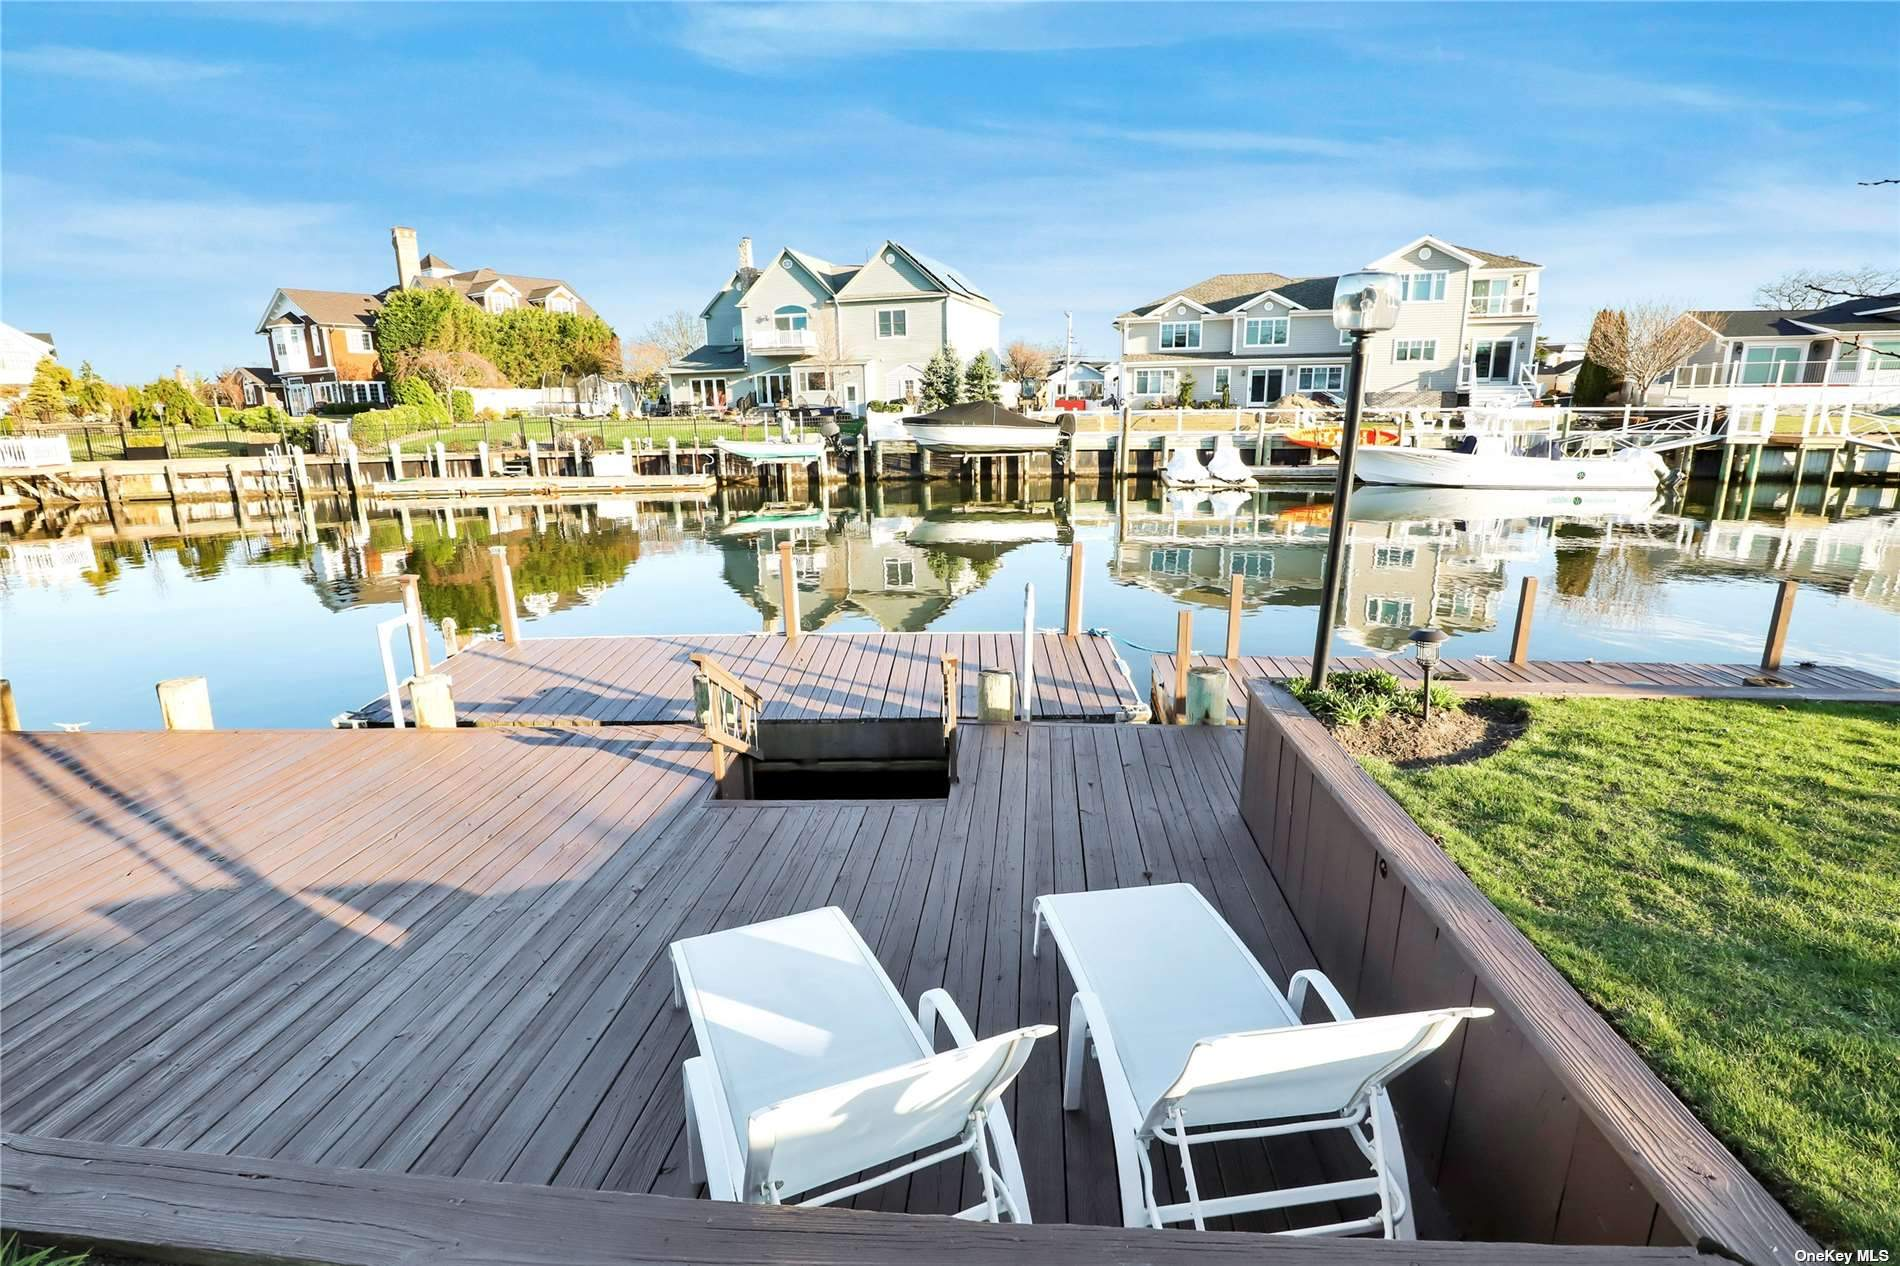 Biltmore Shores Waterfront Sprawling Split Level located on Wide Part of Canal, Seconds to Bay and Biltmore Beach Club  Membership required, 89 ft of Bulkhead and 2 Floating Docks, Brick Walkway, Blue Stone Front Stoop, Vinyl Siding, Vaulted Entry and Baths, Hardwood Floors as Seen, Gas Heating, Rheem Central Air Conditioning, 200 Amps, Wood Burning Fireplace in Family Room with Andersen Slider out to Rear Yard, Casement and Replacement Windows, 3 year Old Roof, 2 Car Garage and Driveway, Large Bedrooms with Walk In and Double Closets, Pull Down Attic Stairs, Gas Cooking, Hi Hats, Plenty of Storage, Great Waterfront Home 64 wide in front fans out to 89 wide in back ...110 deep with Generous Living Space and Setting.